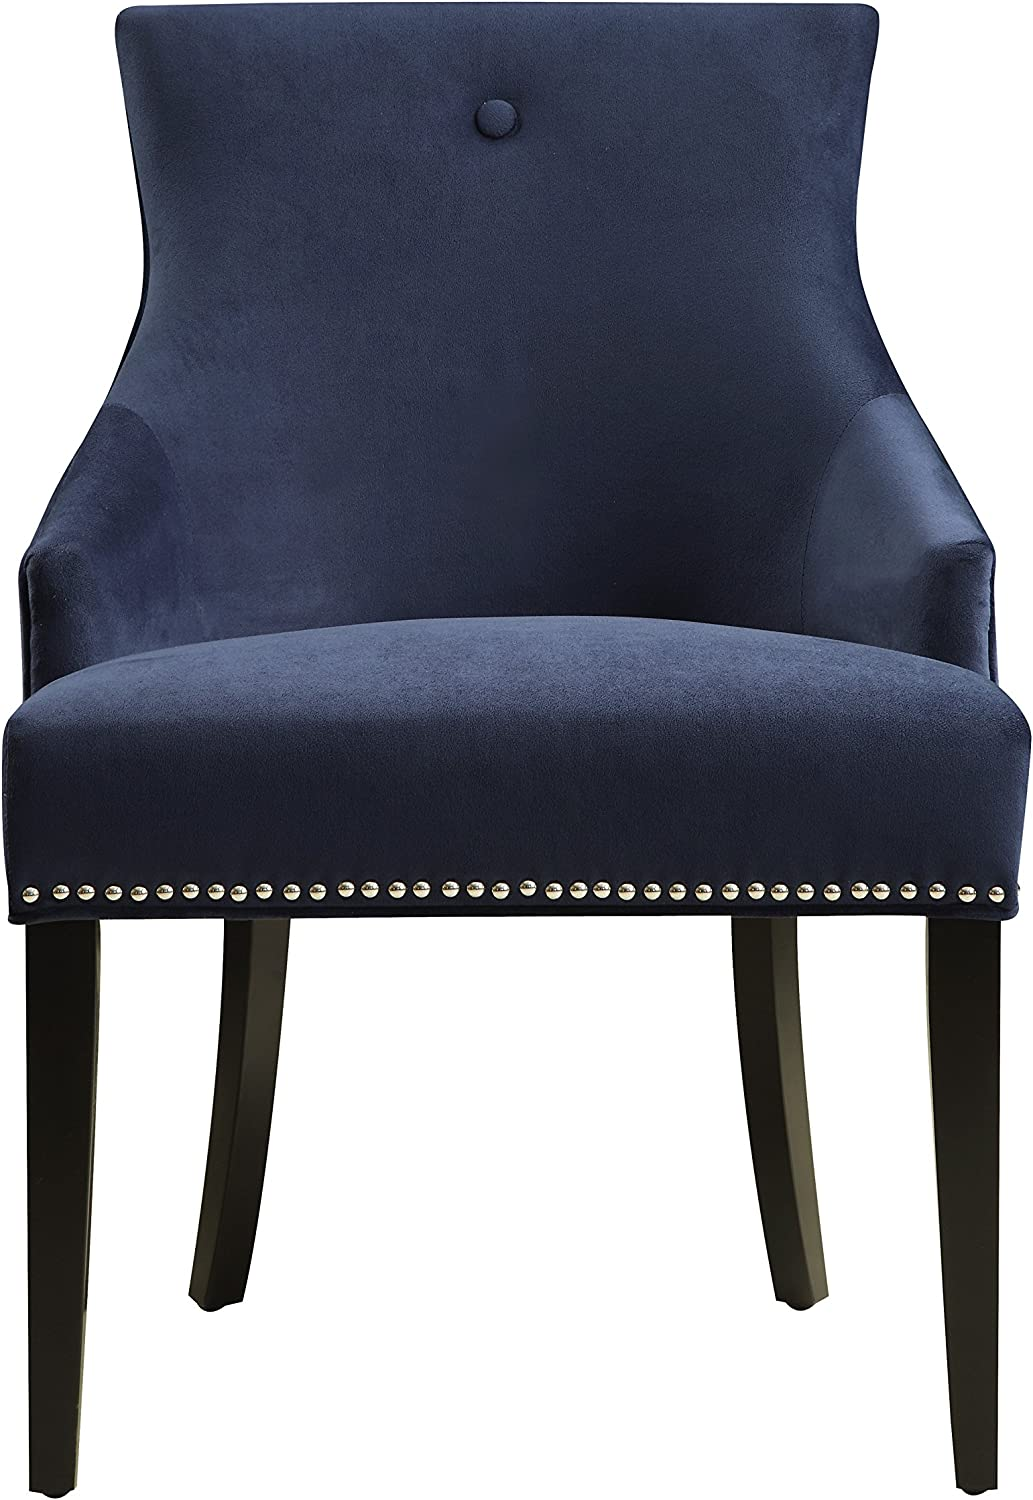 """Pulaski DS-2520-900-393 Urban Accents Button Back Upholstered Dining Chair, 23.03"""" X 25.2"""" X 33.86"""", Navy"""